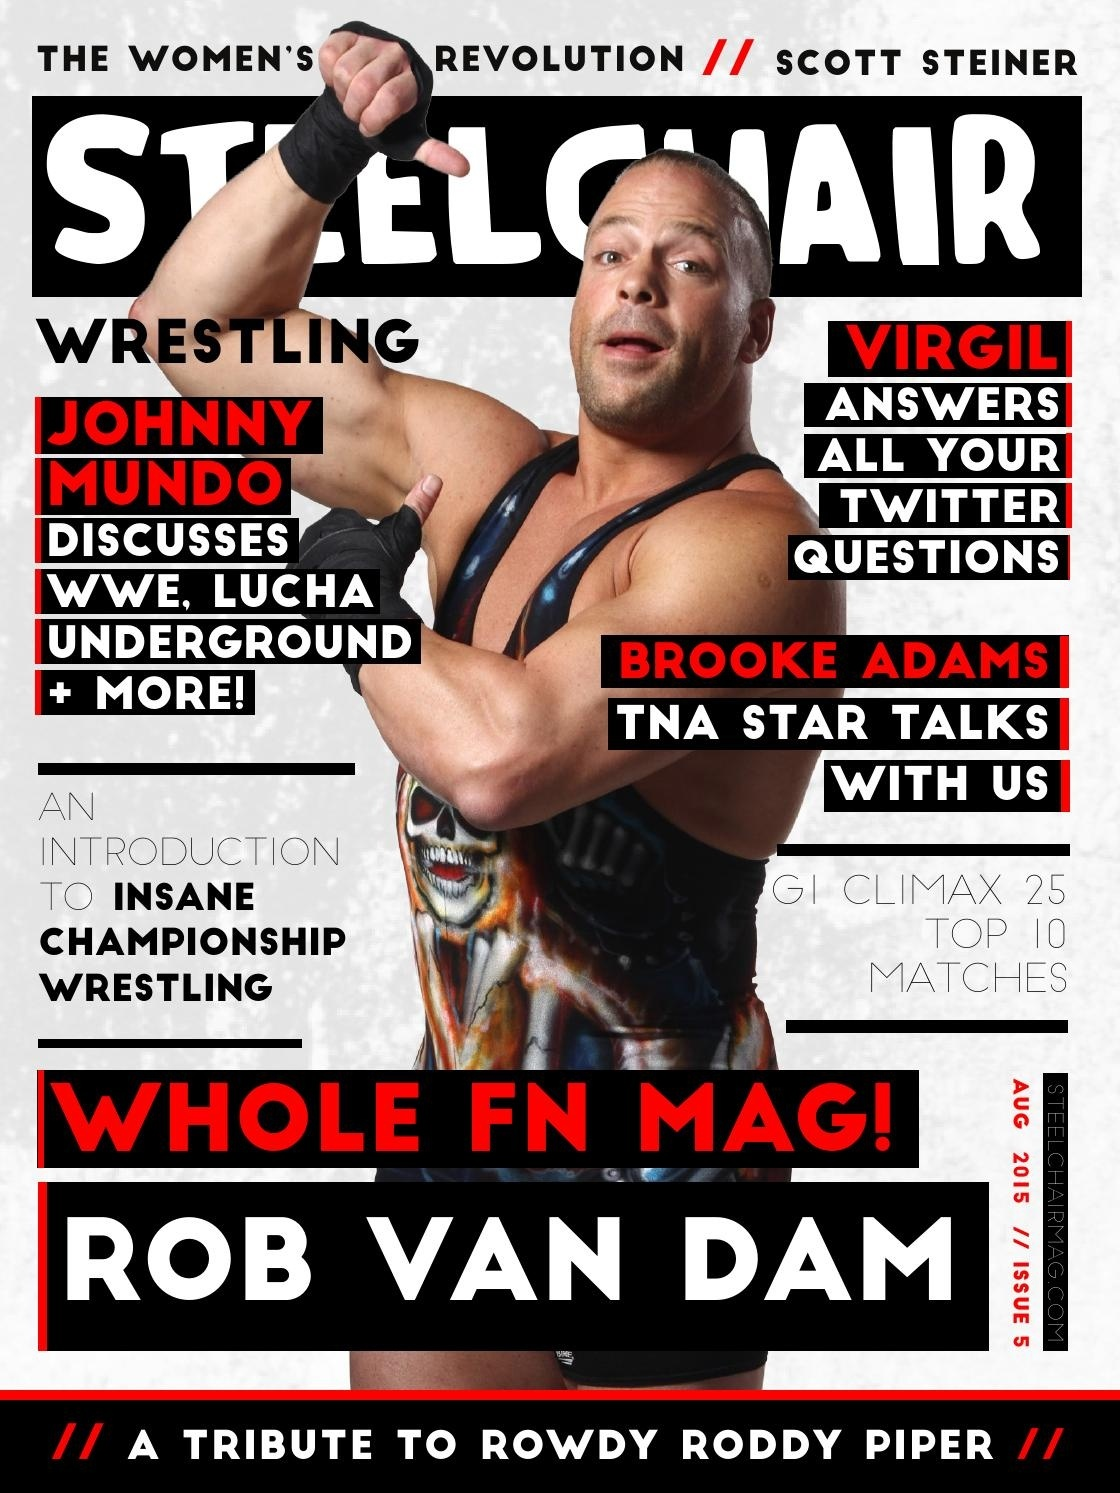 Steelchair Wrestling Magazine #5